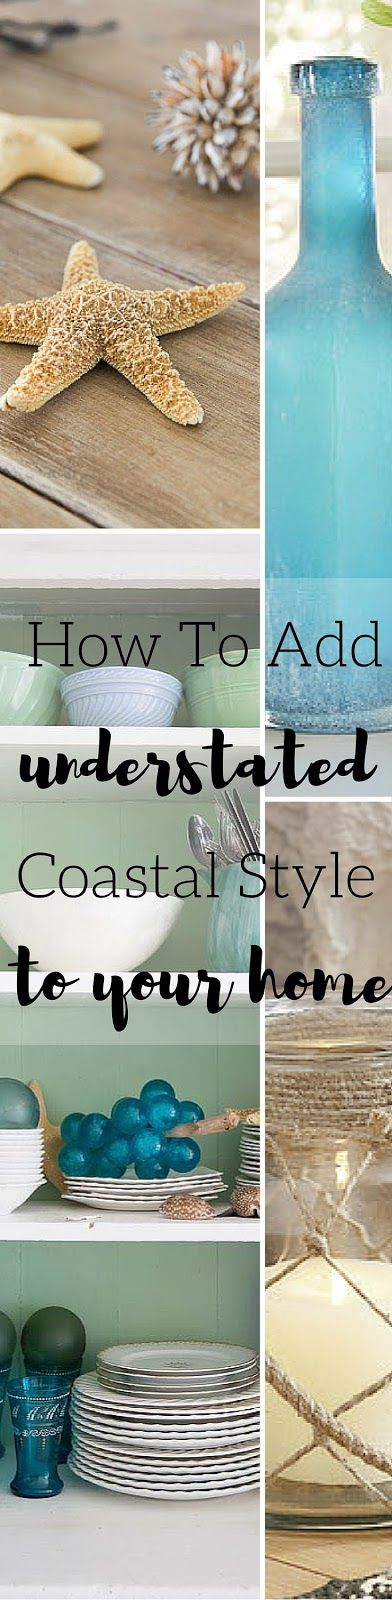 How To Add Understated Coastal Style To Your Home - Shabbyfufu